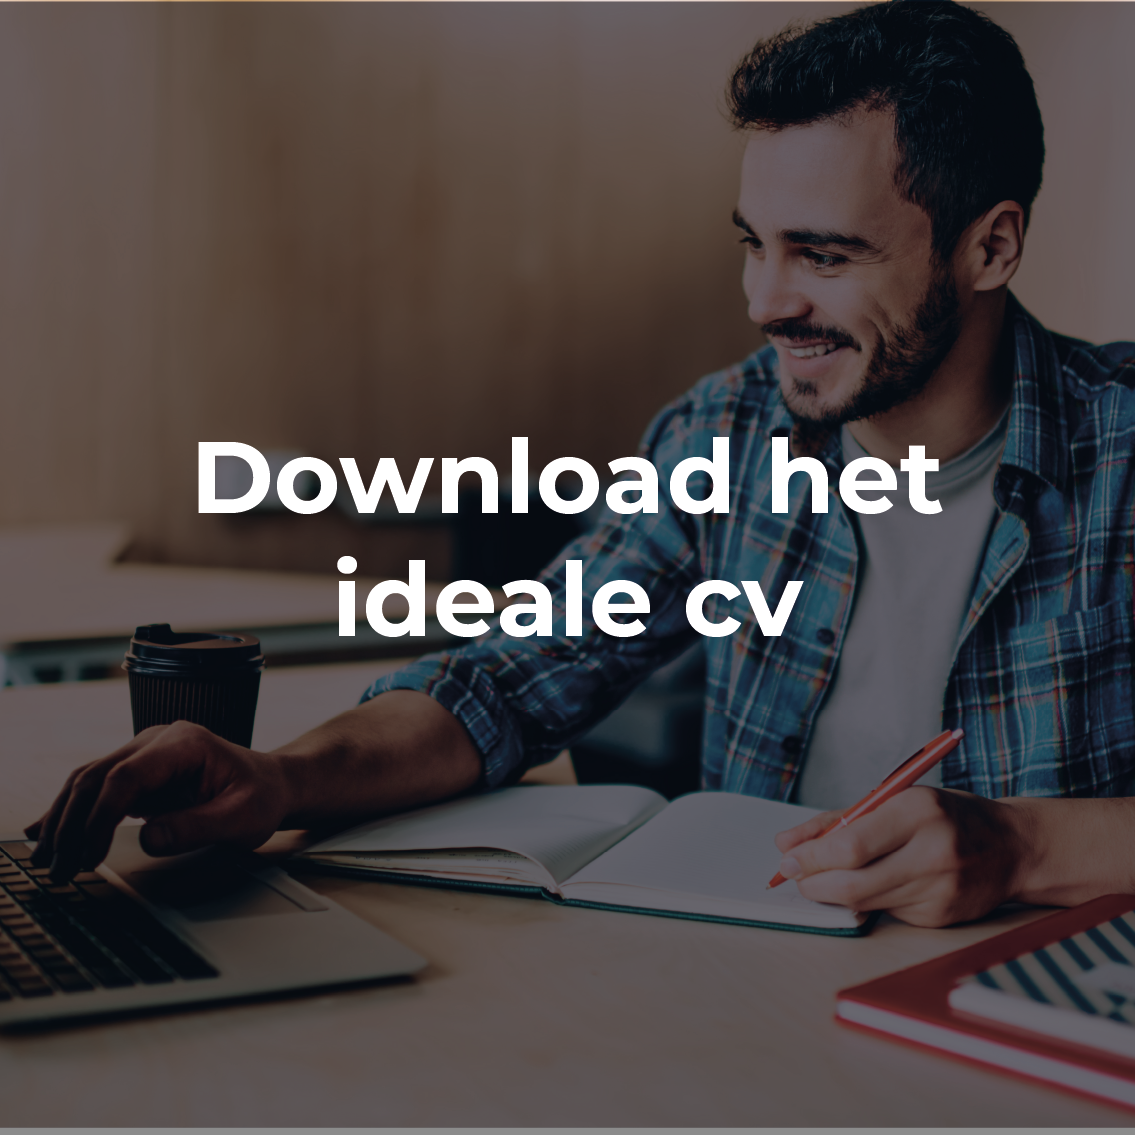 Download het ideale cv